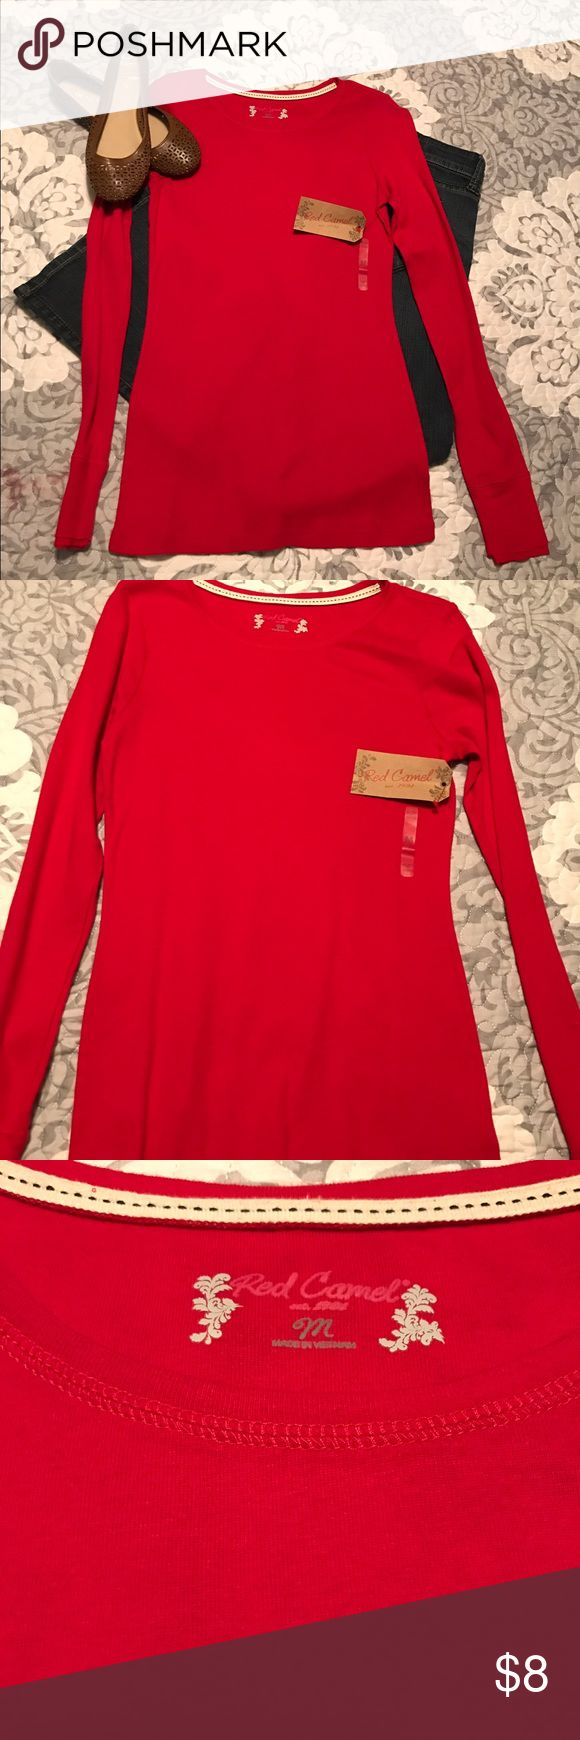 Red long sleeve Brand new red long sleeve t shirt. Excellent unworn condition. Smoke free home. Red Camel Tops Tees - Long Sleeve